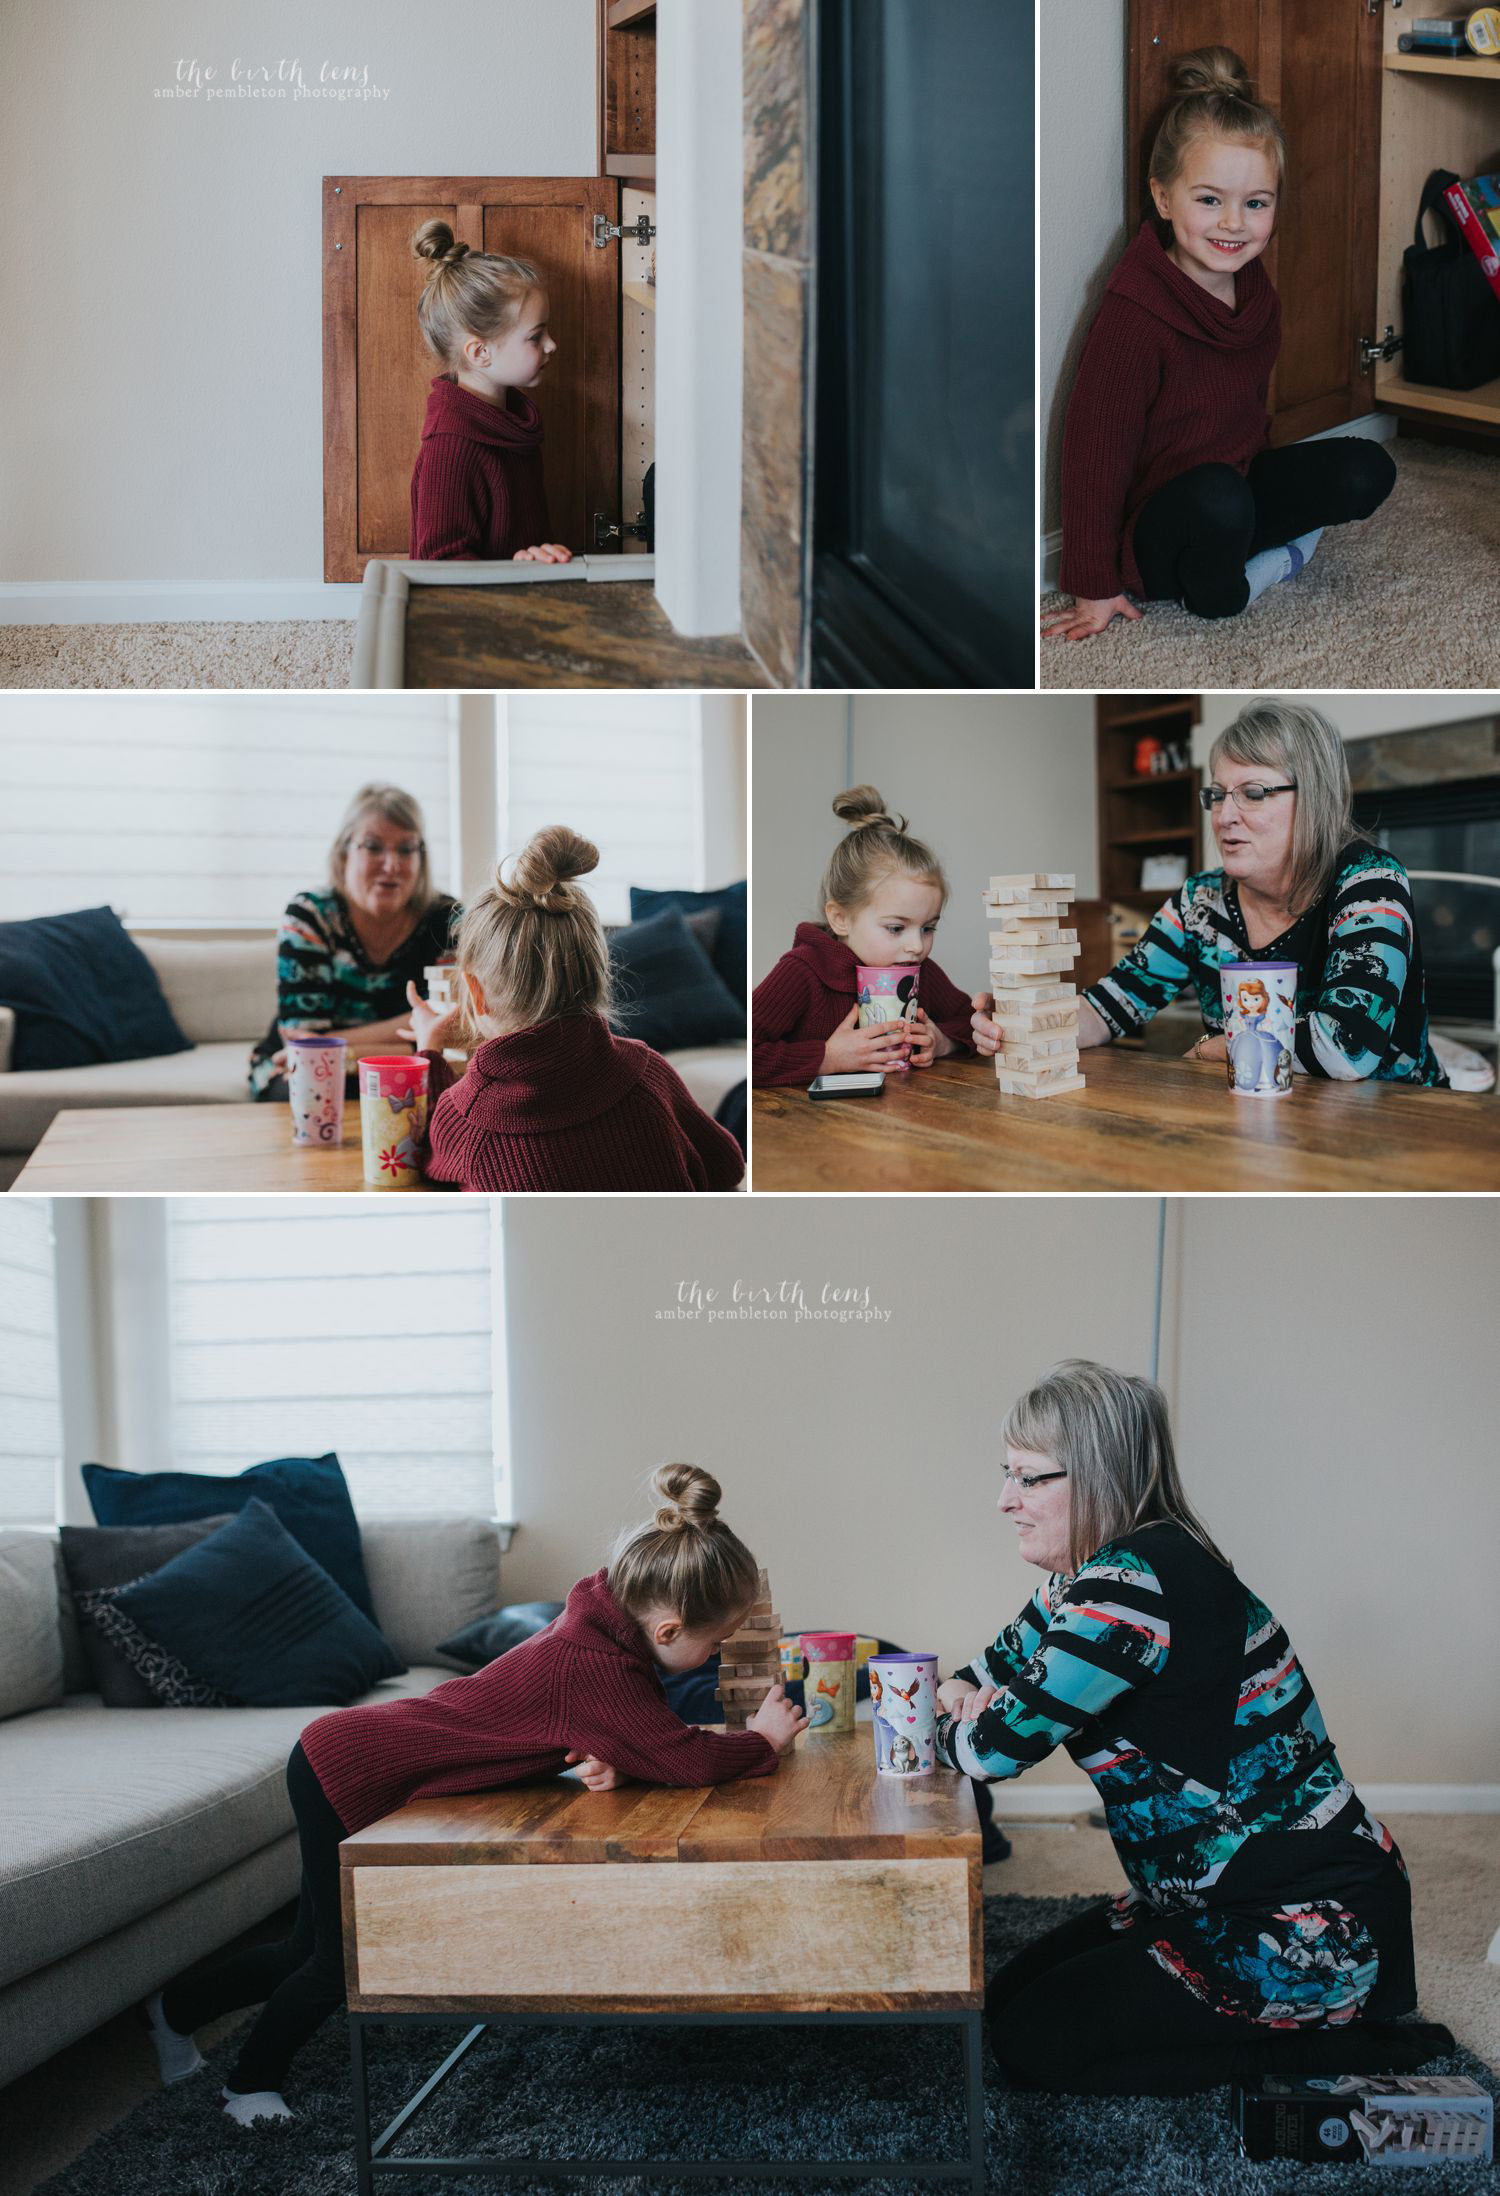 grandma-playing-games-with-granddaughter-reno-nv.jpg